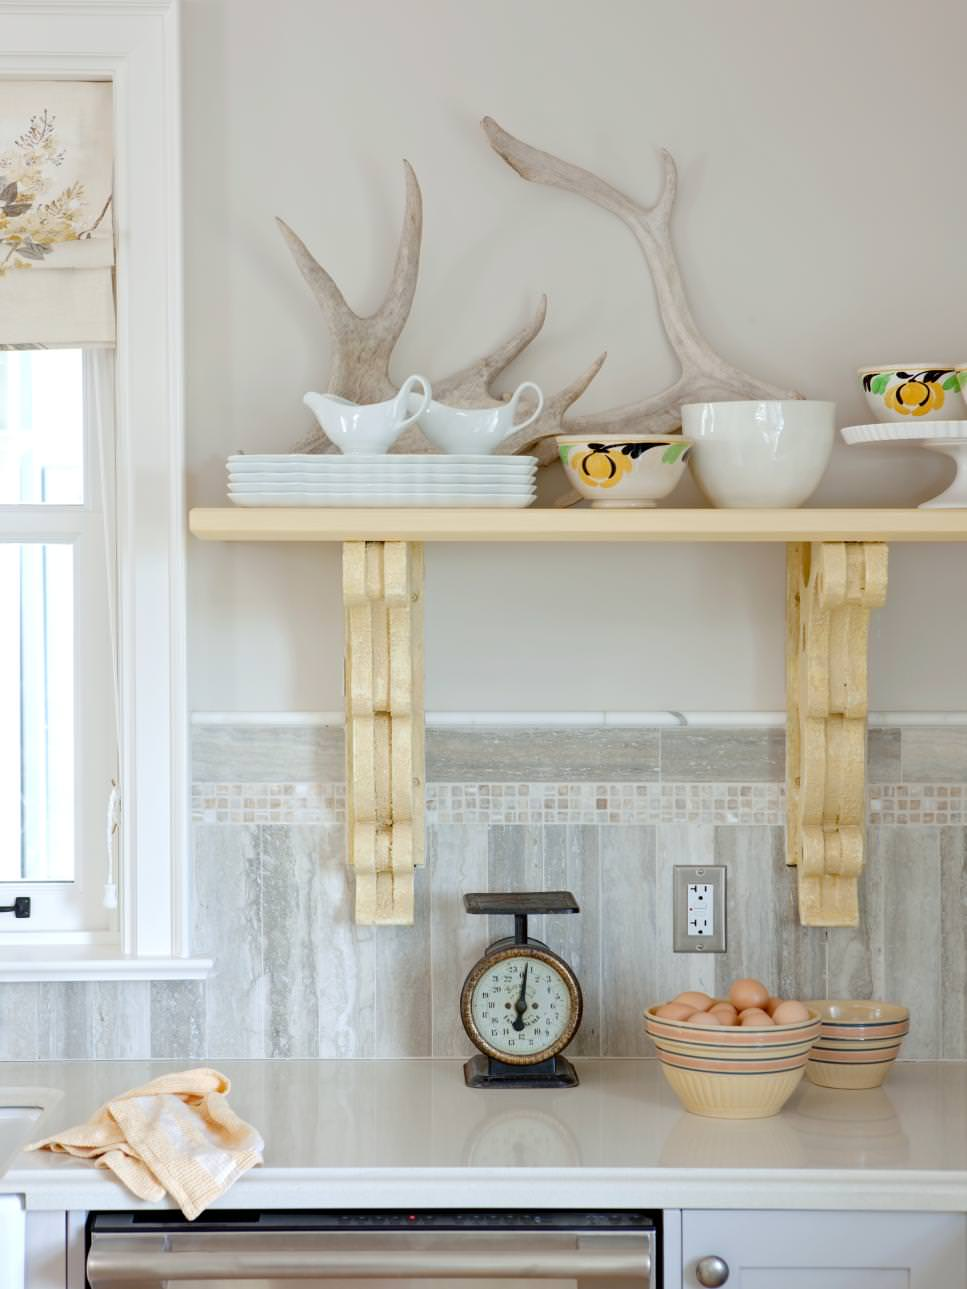 19 rustic wall shelves living room designs designtrends for Rustic yellow kitchen